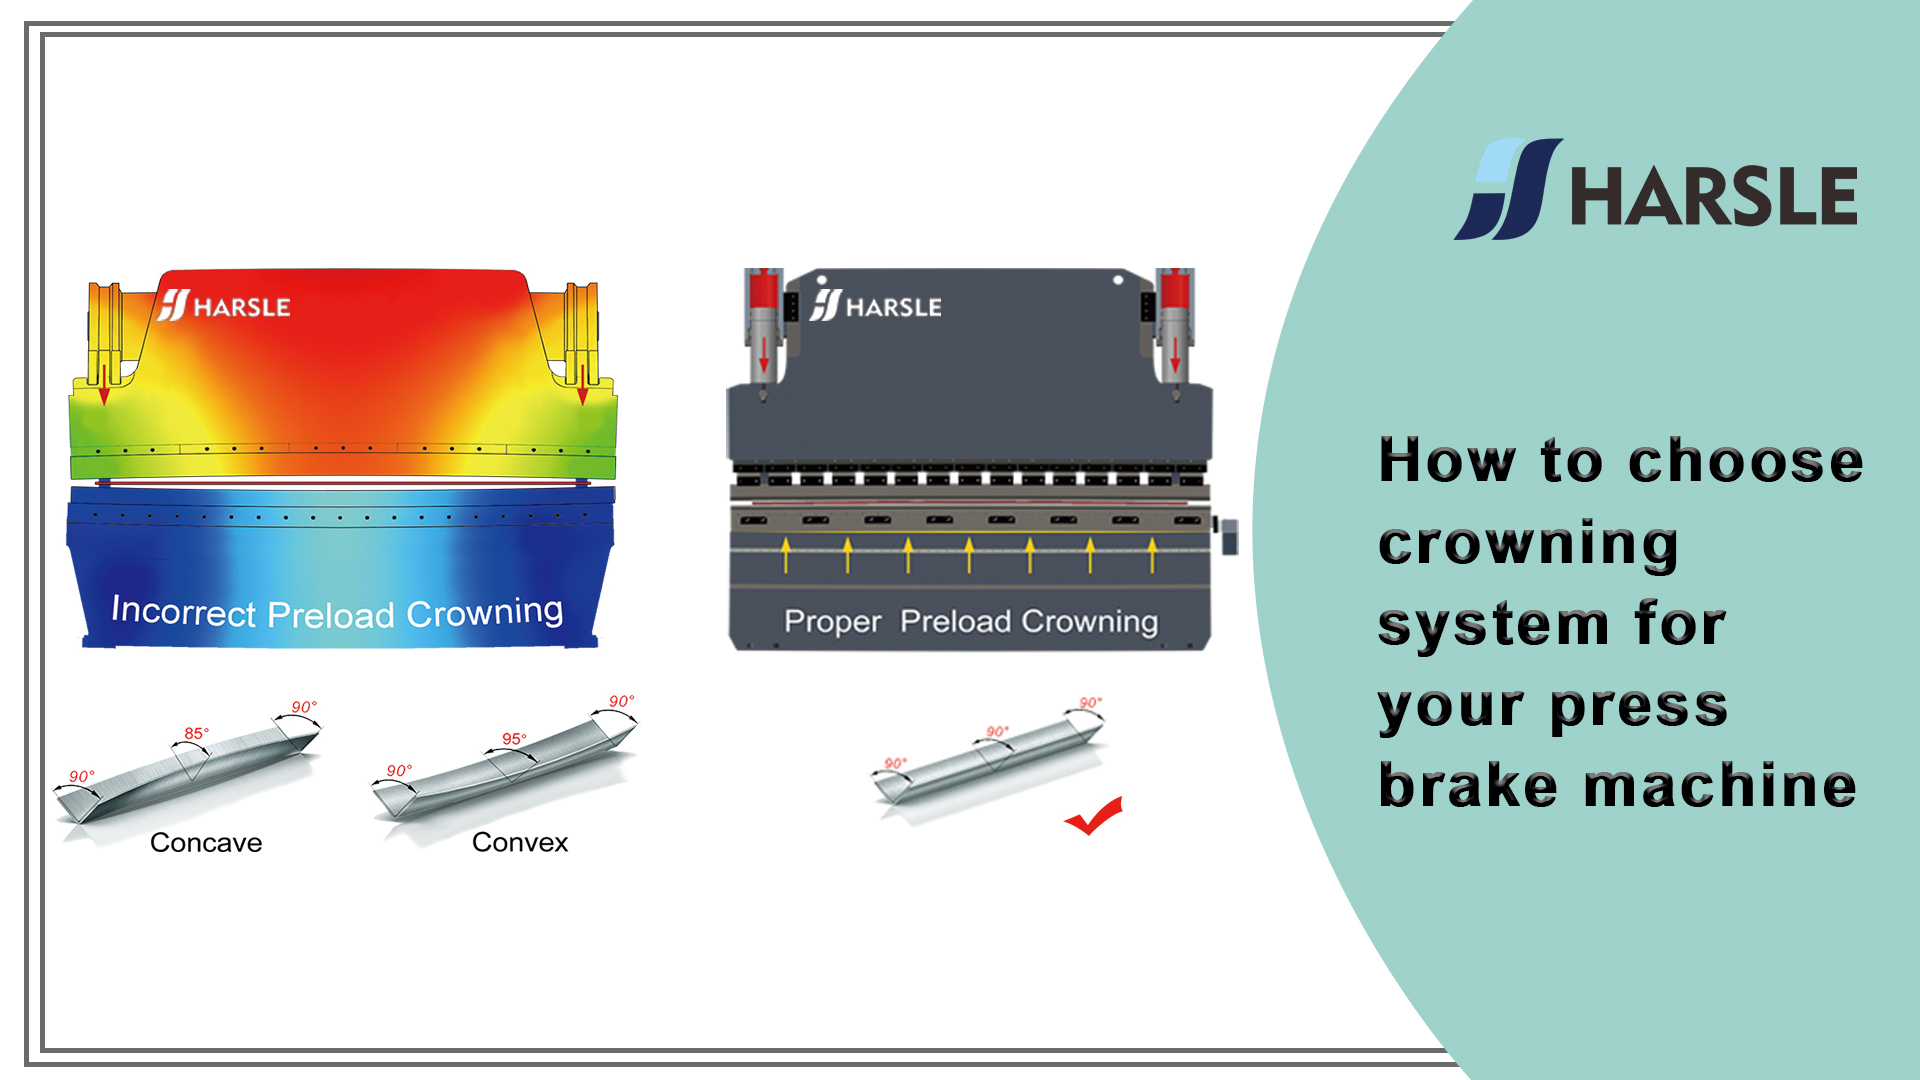 How to choose crowning system for your press brake machine